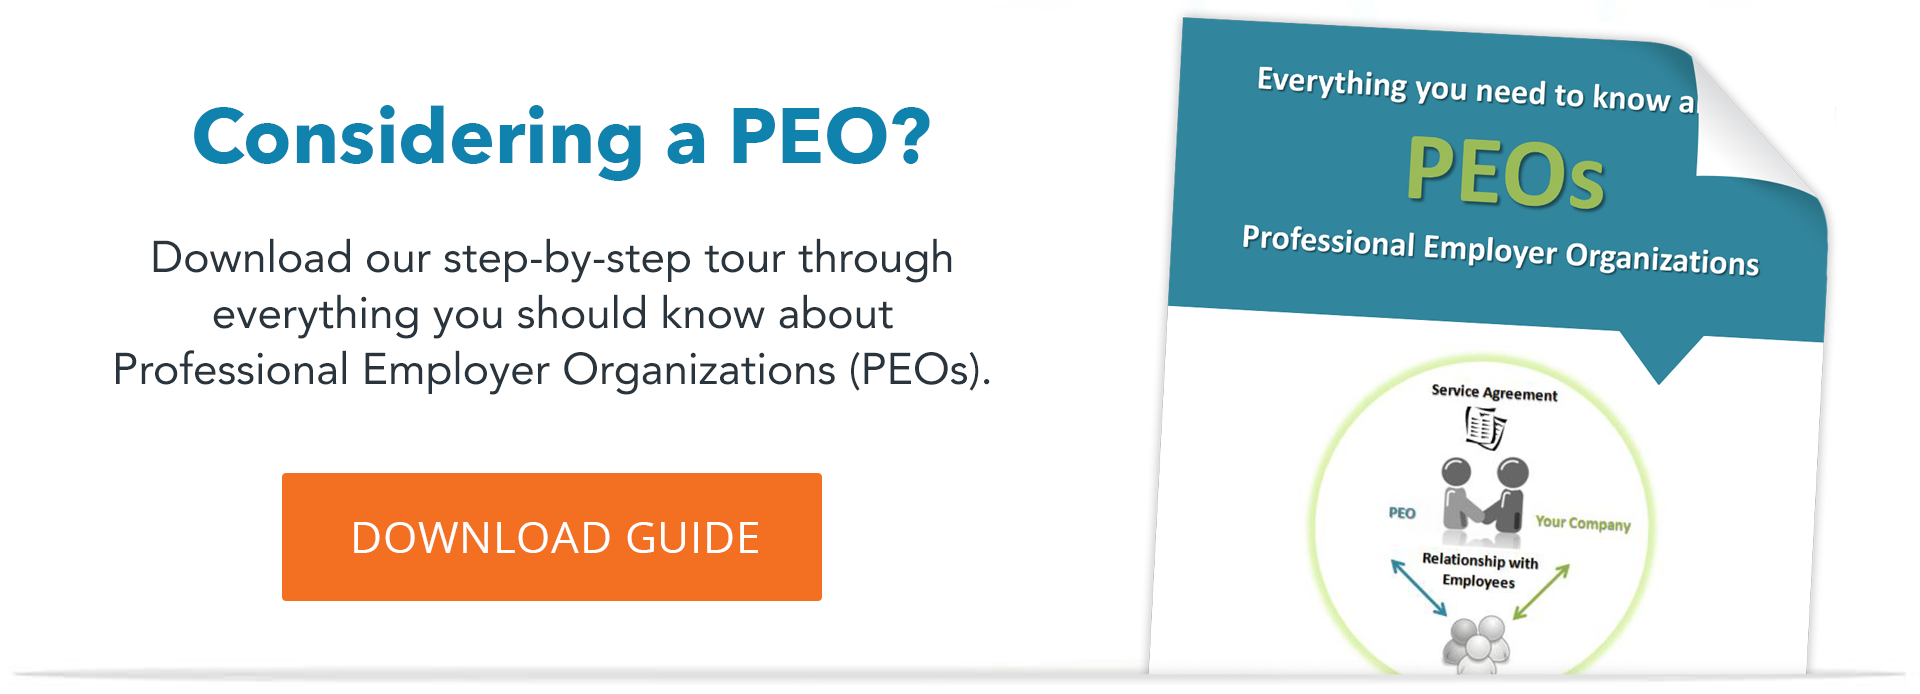 Download Free Guide About PEOs